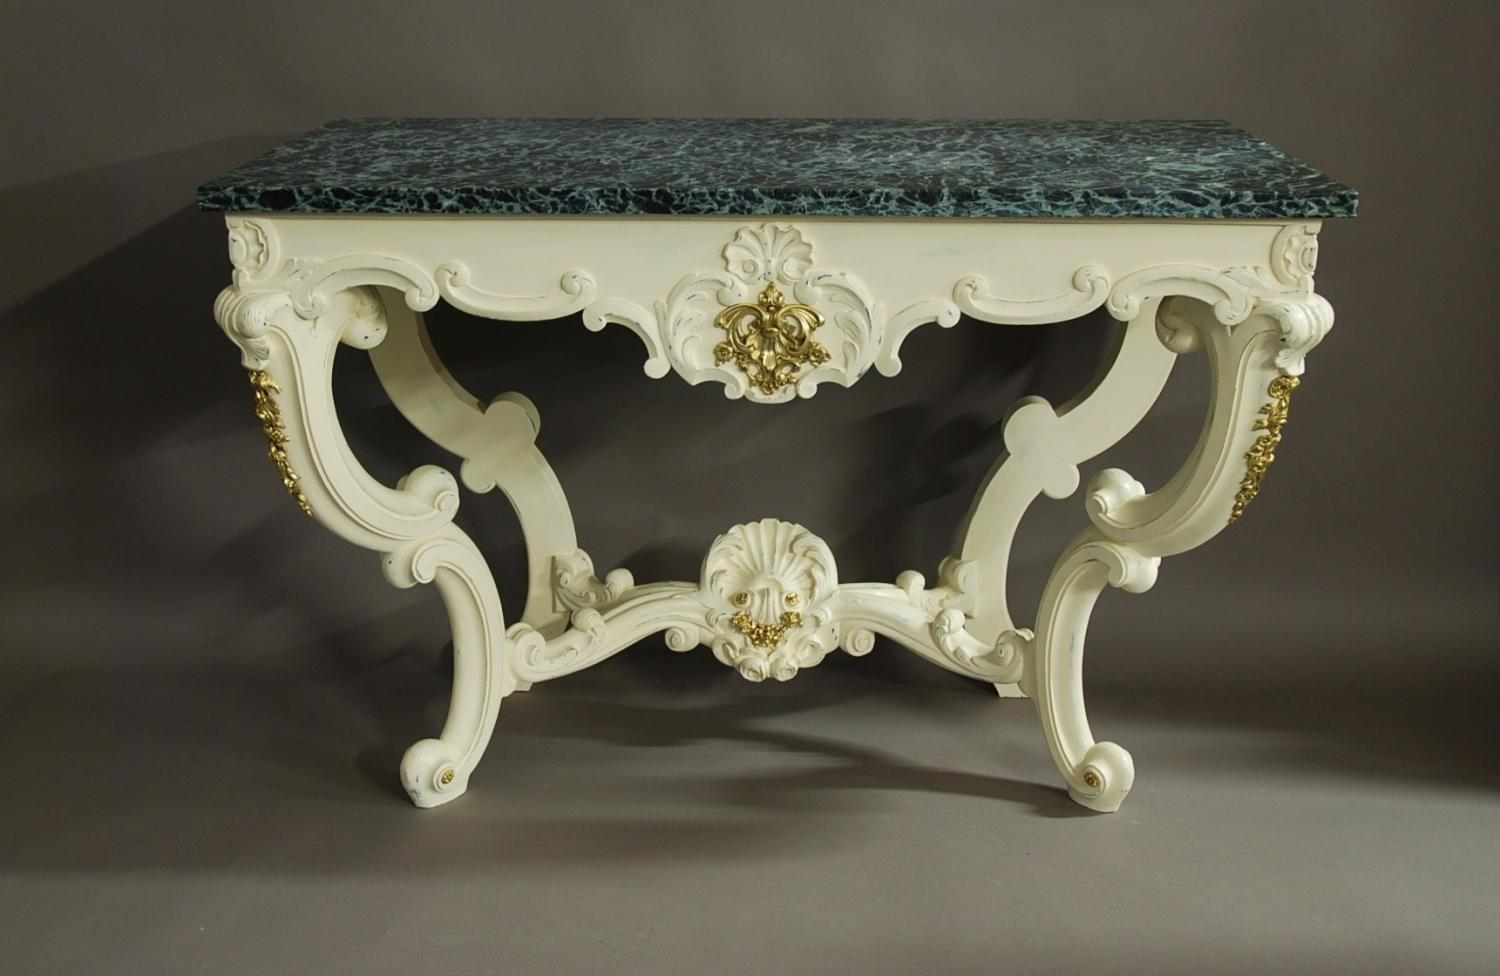 Mid 19th century French console table